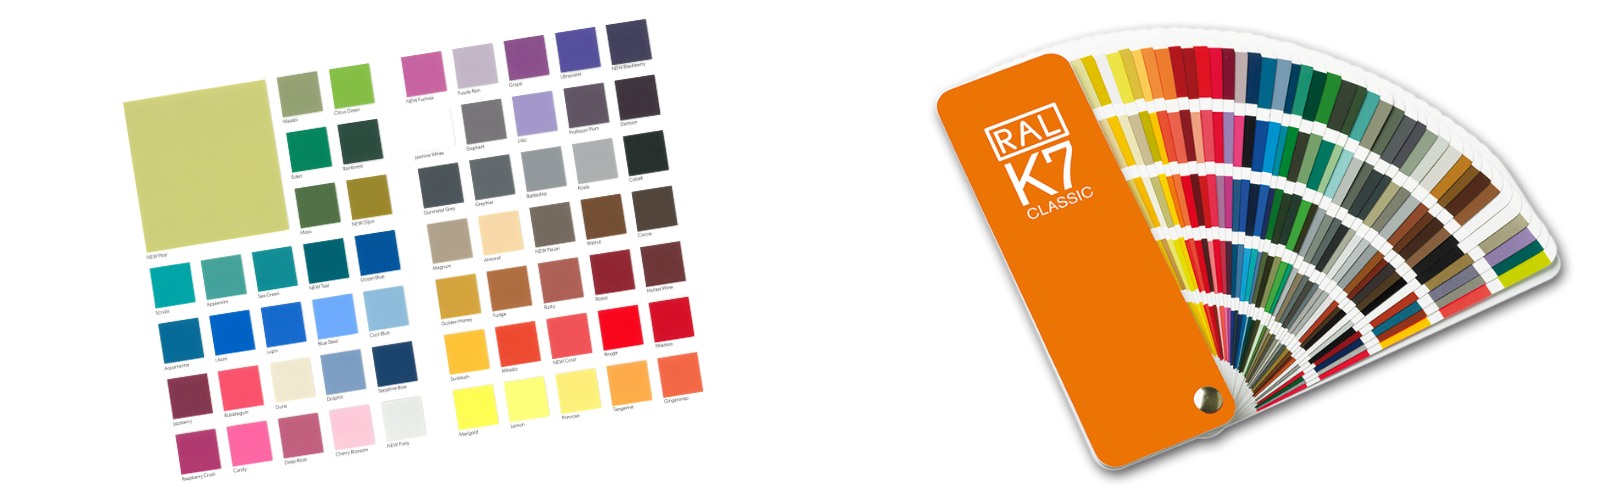 Swatch card showing vinyl colours for premium stadium seating and a RAL swatch card showing the vast range of colours available for colour matching